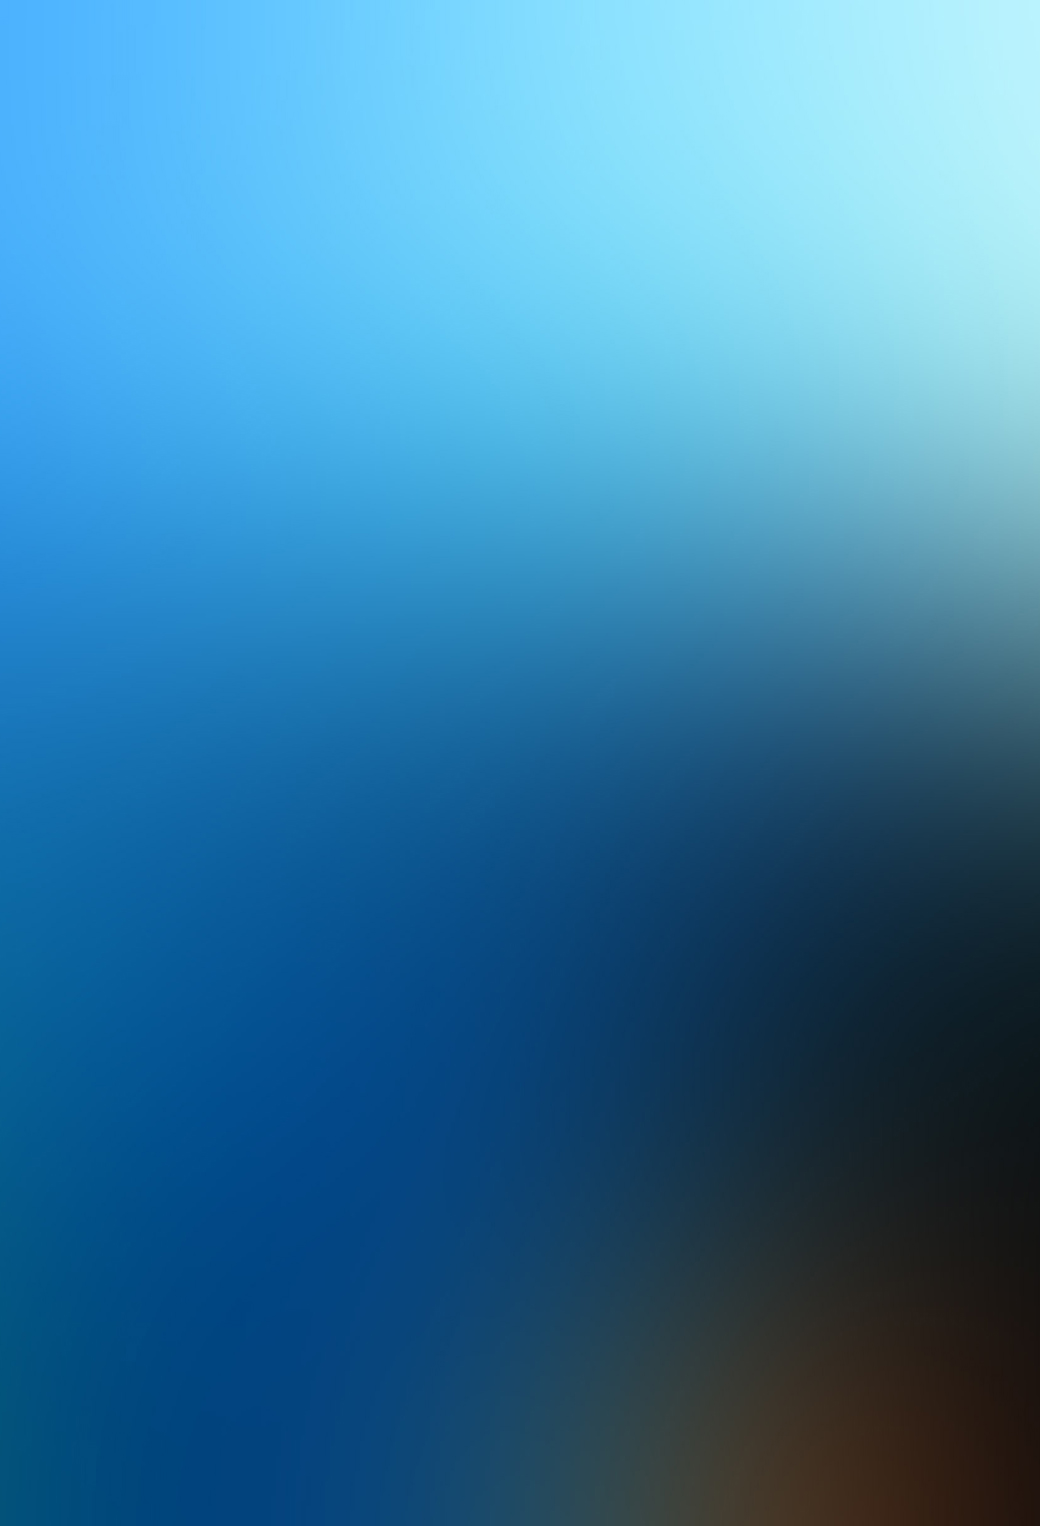 Blue Blurred 3Wallpapers iPhone Parallax Blue Blurred